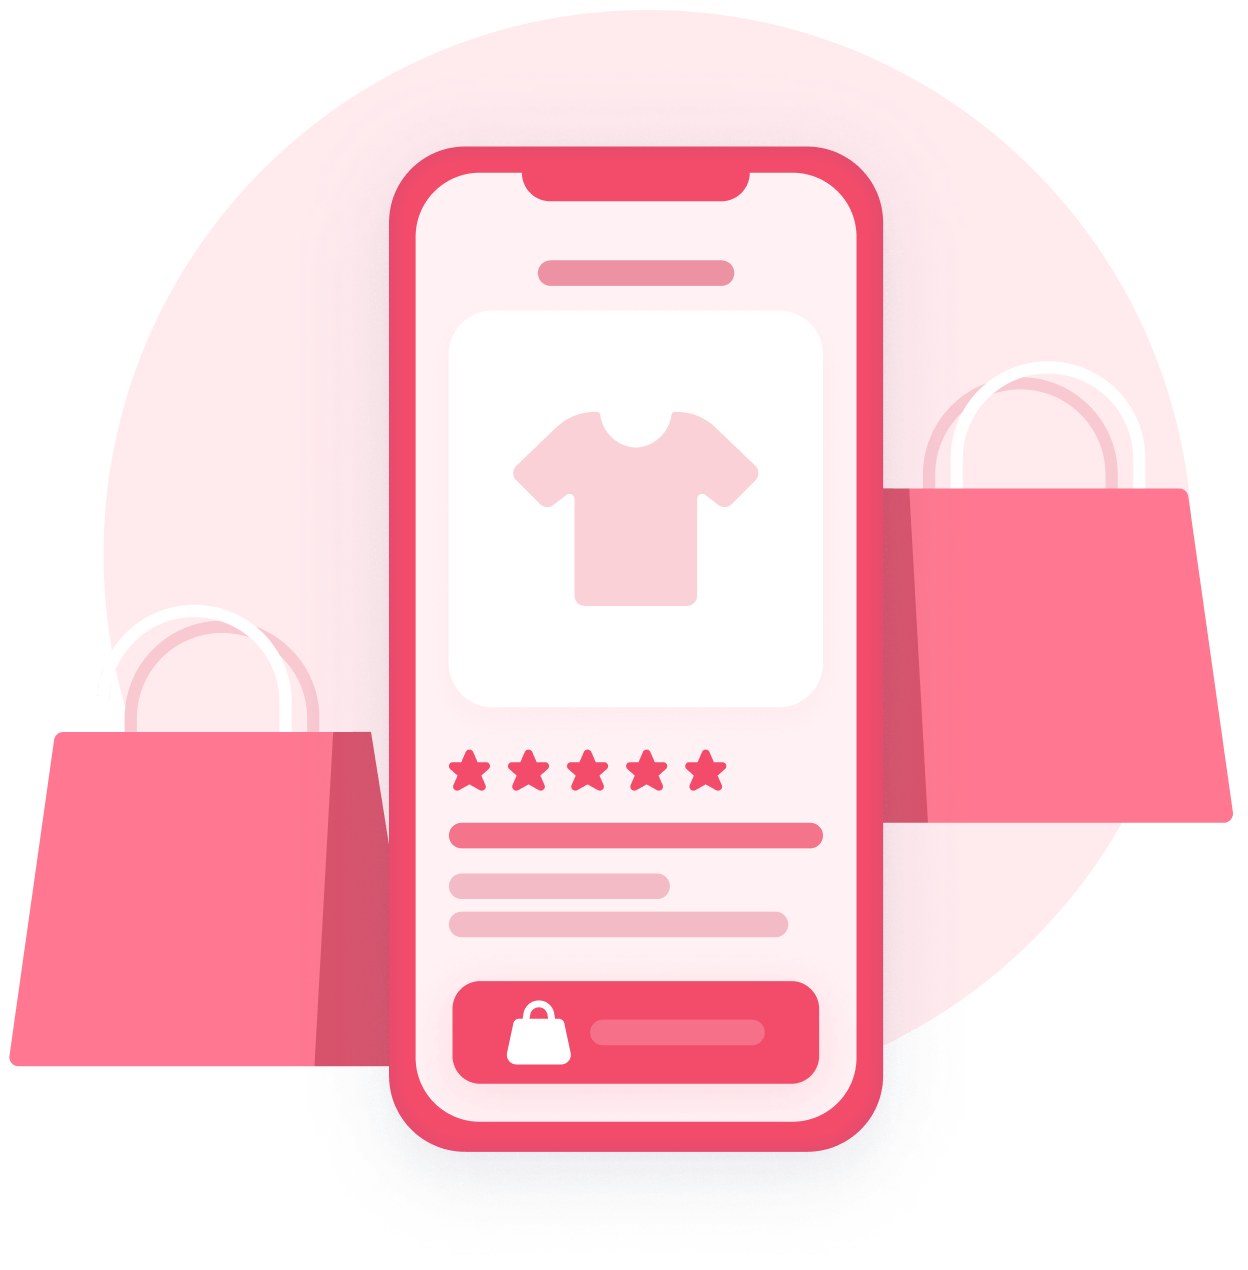 E-commerce and Shopping app